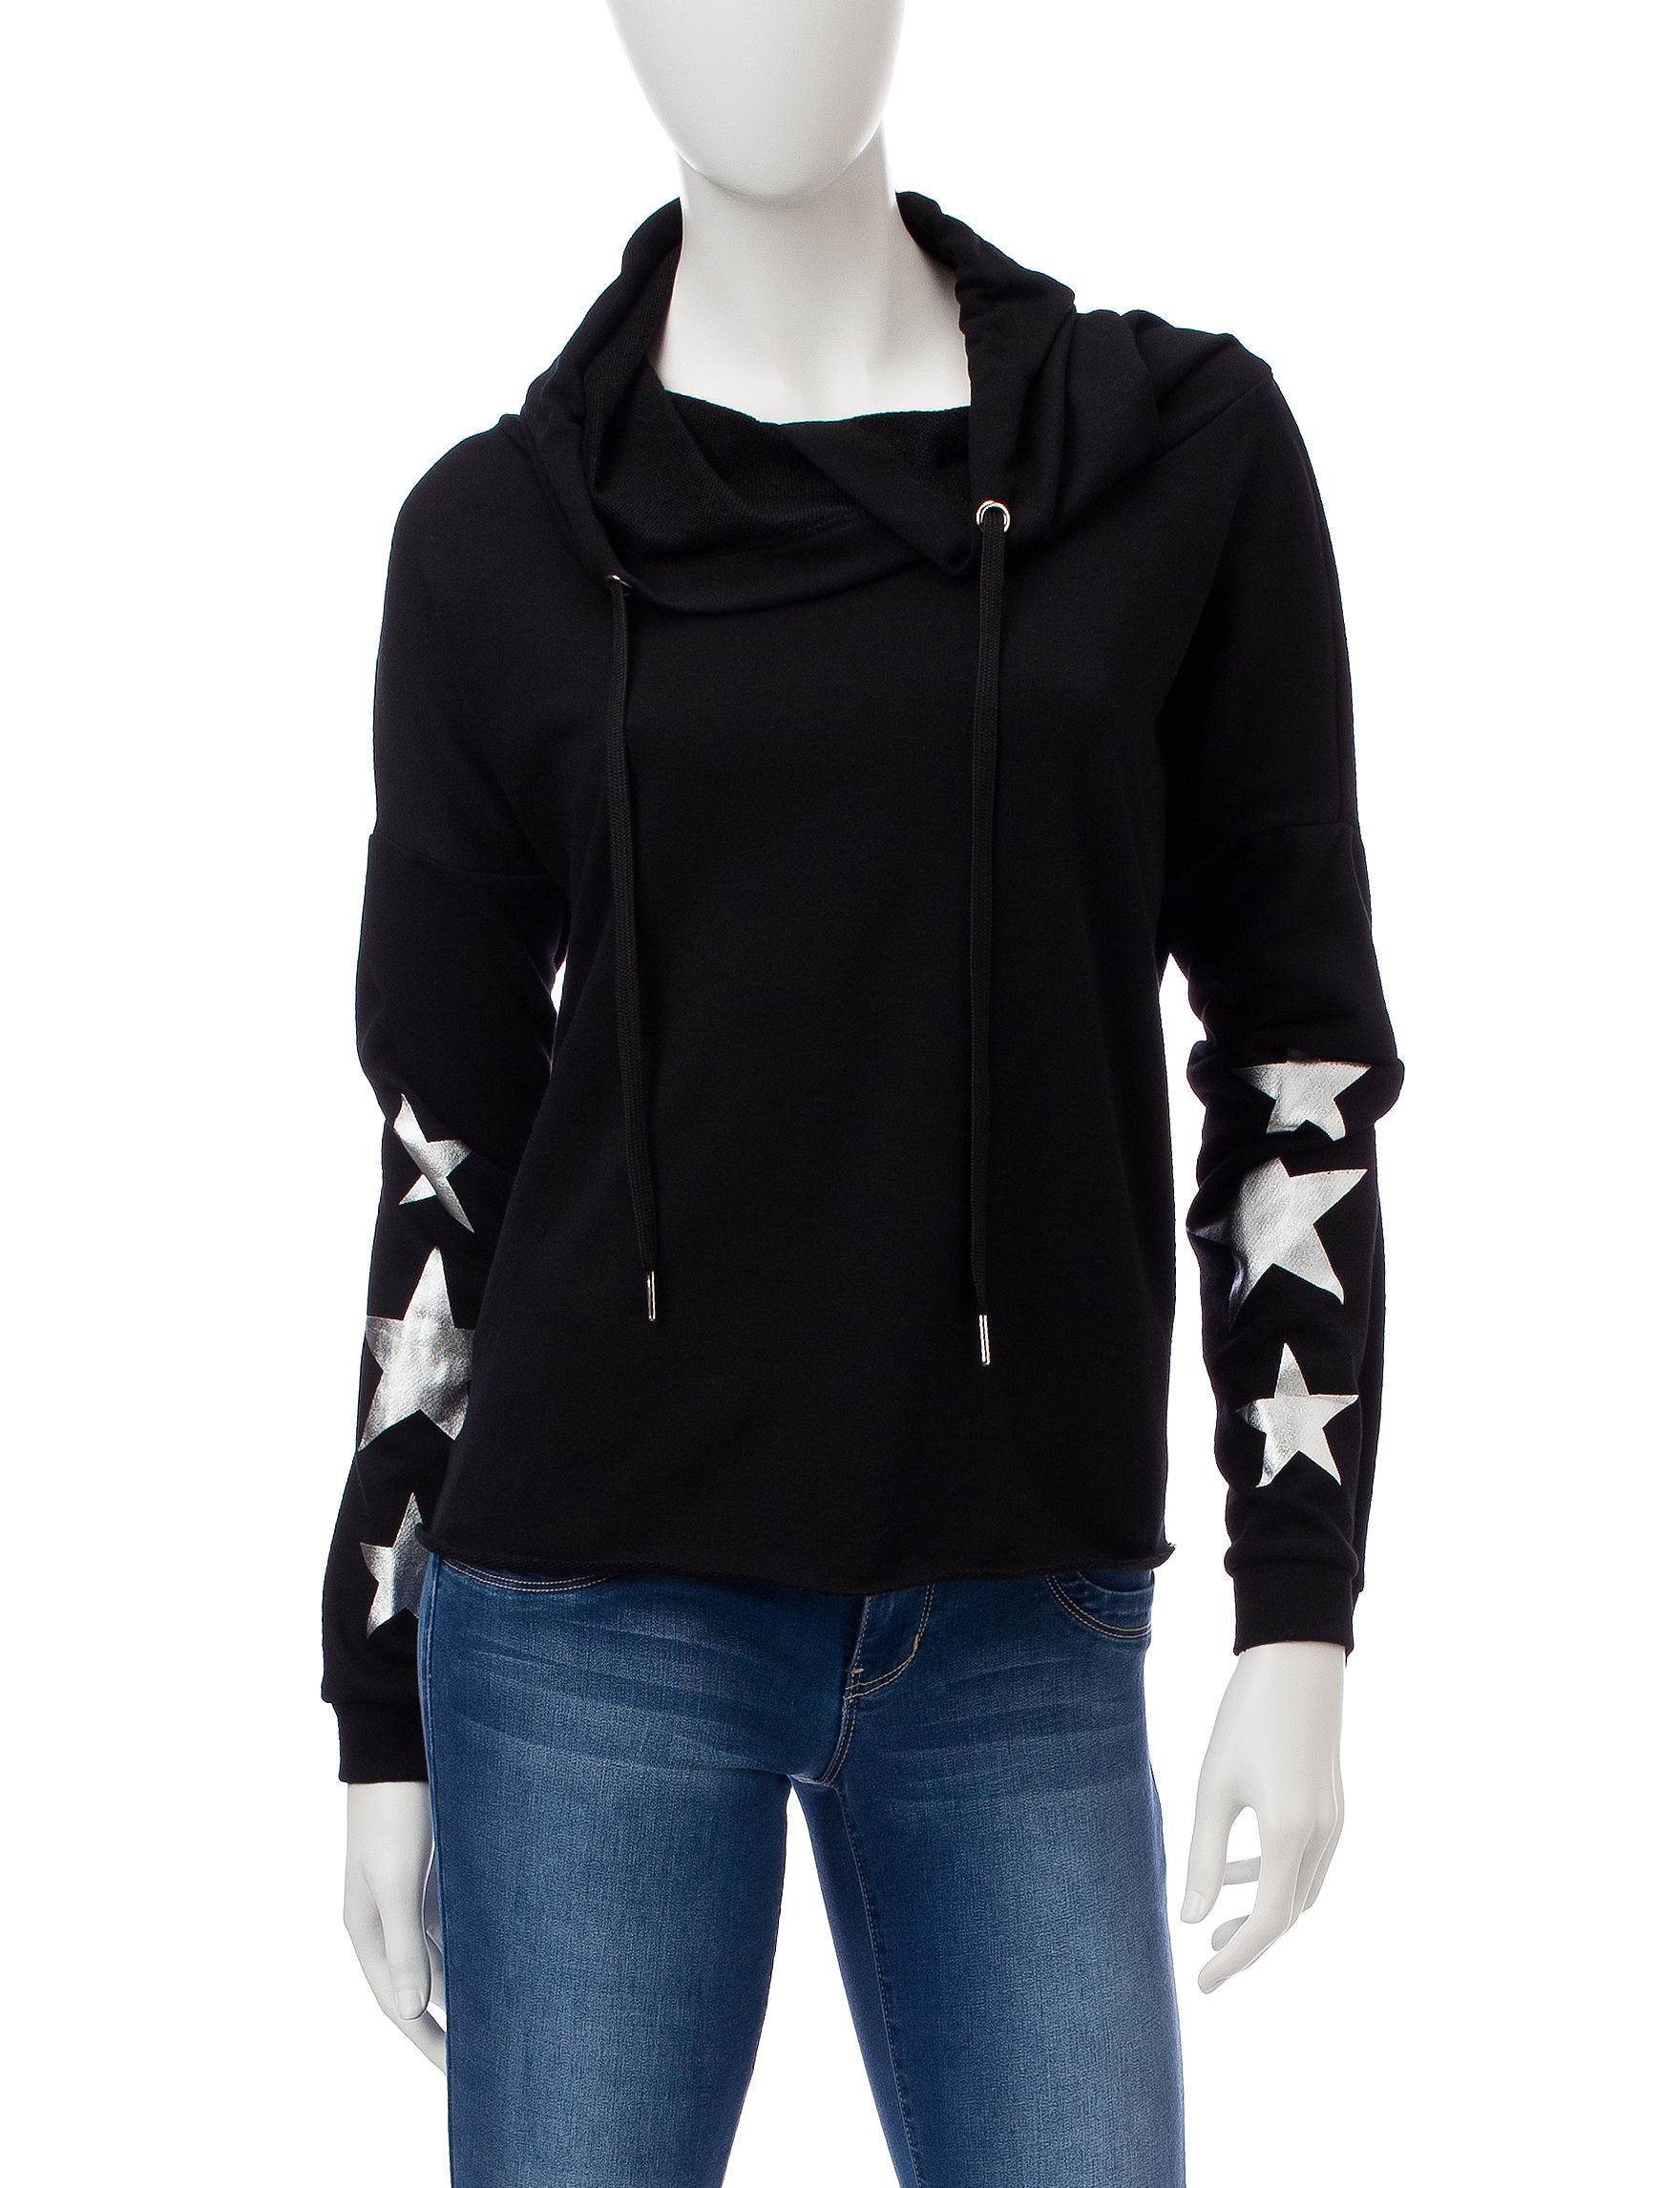 Justify Black Pull-overs